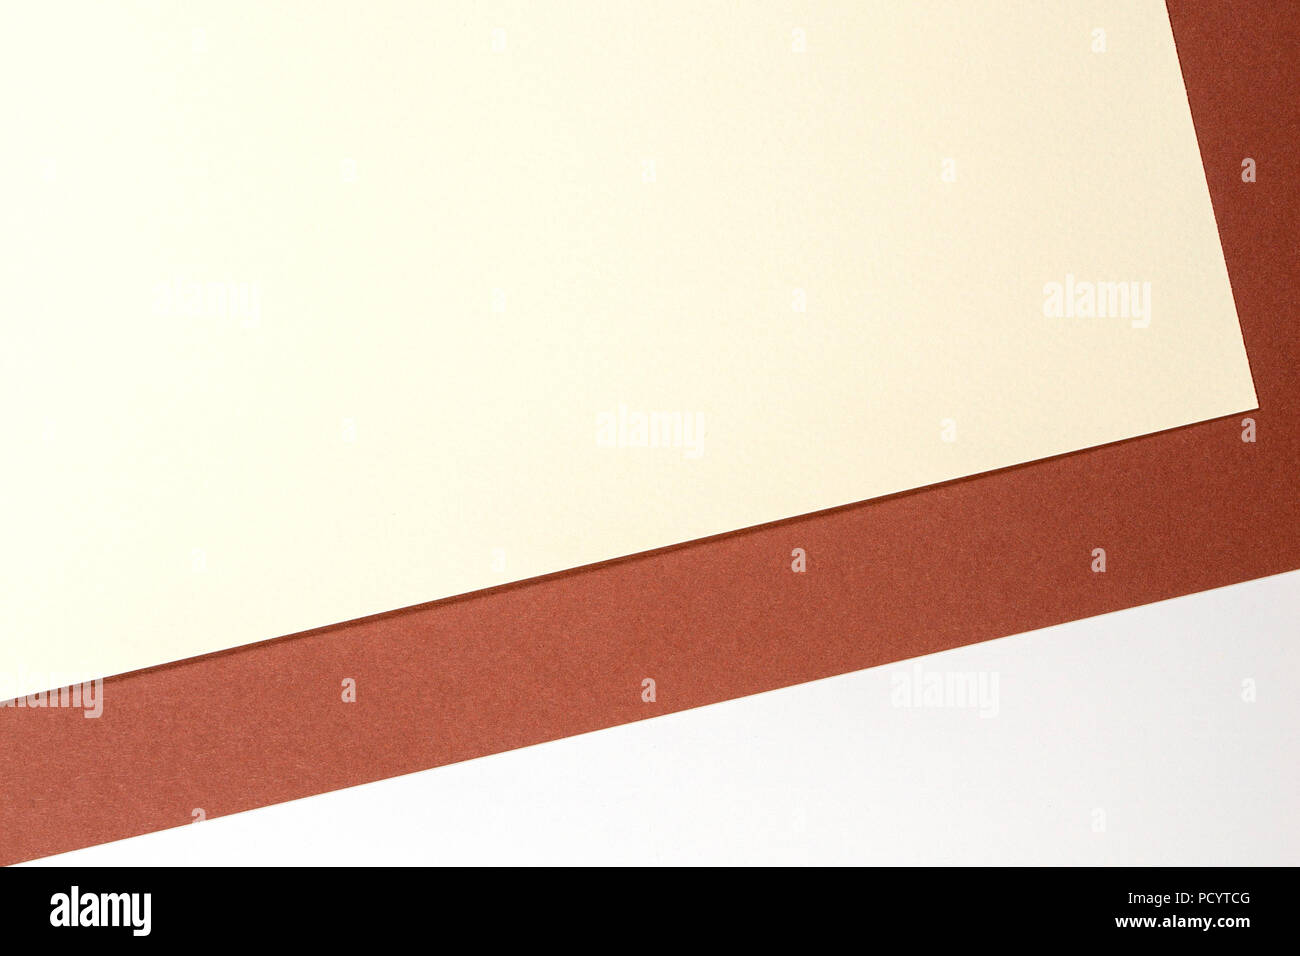 Color papers geometry composition background with white beige and brown tones - Stock Image